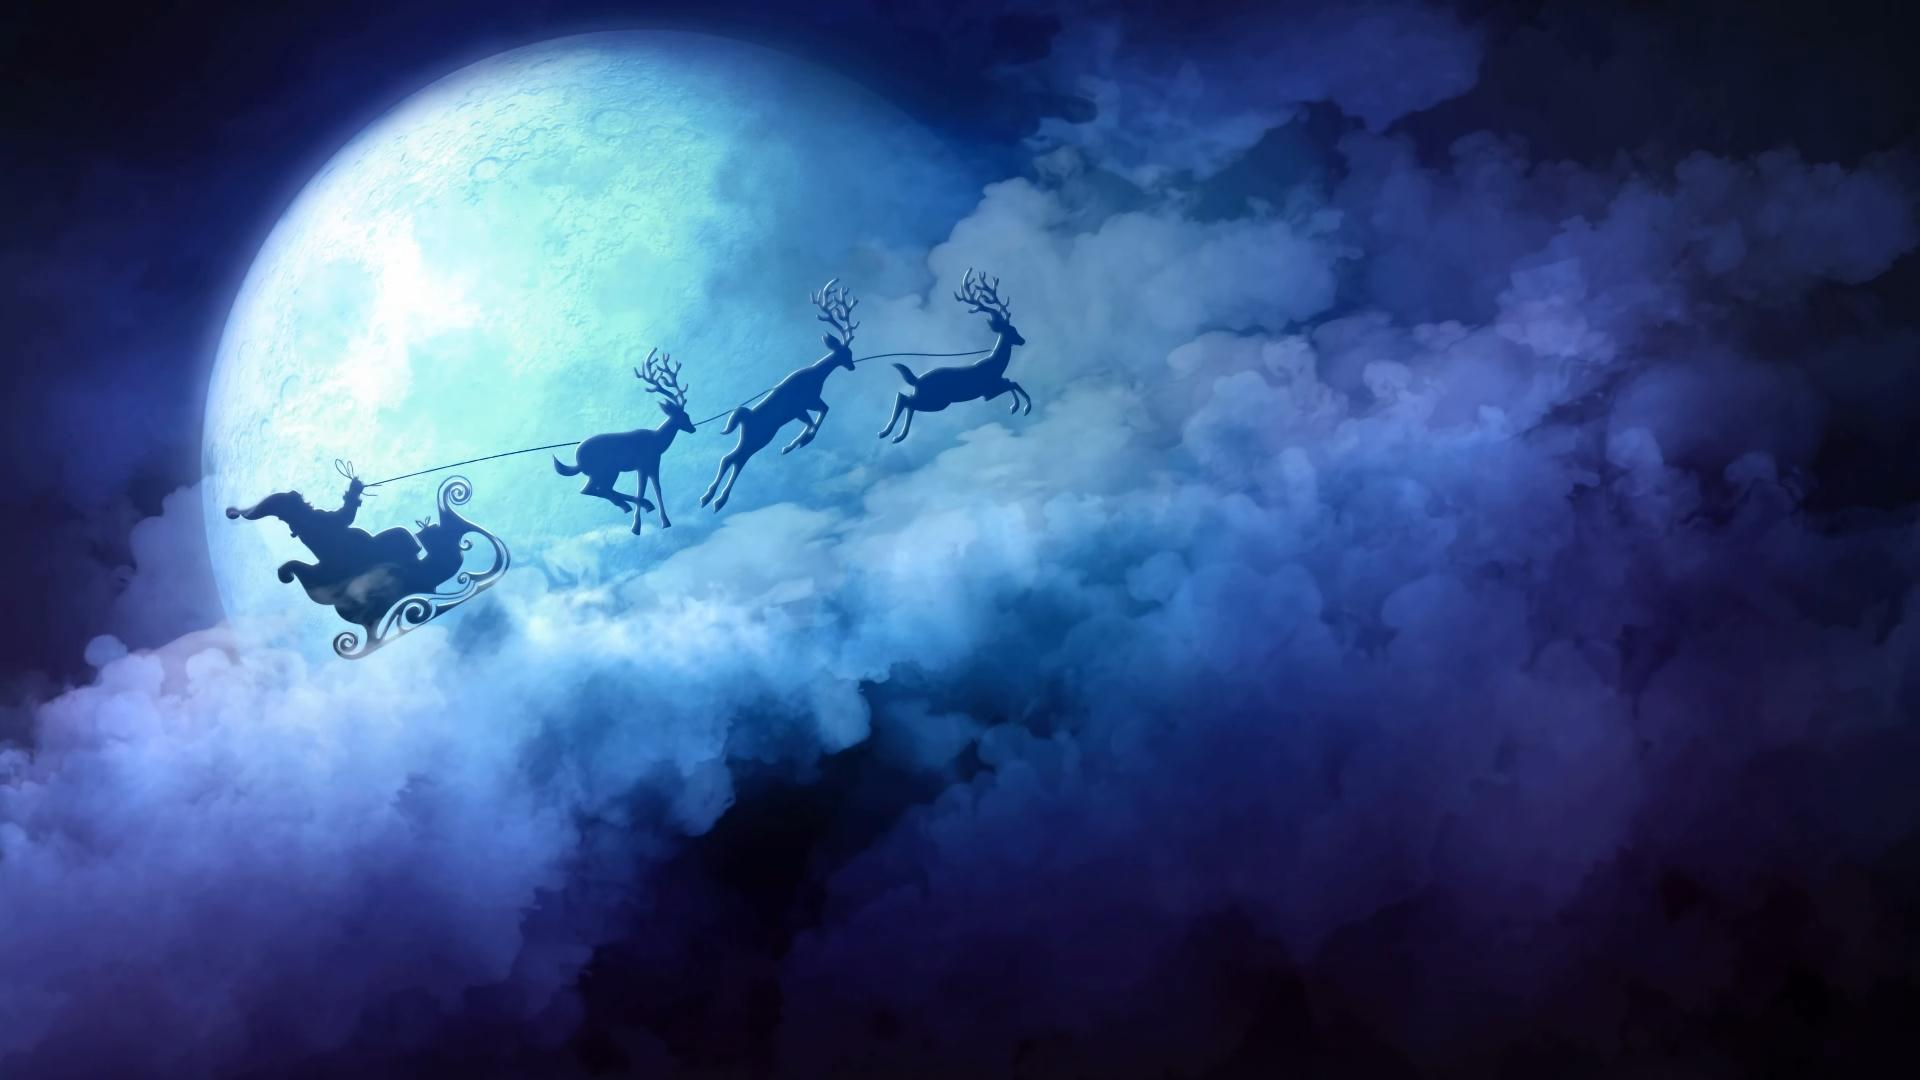 Wallpaper Of The Day: Animated Christmas